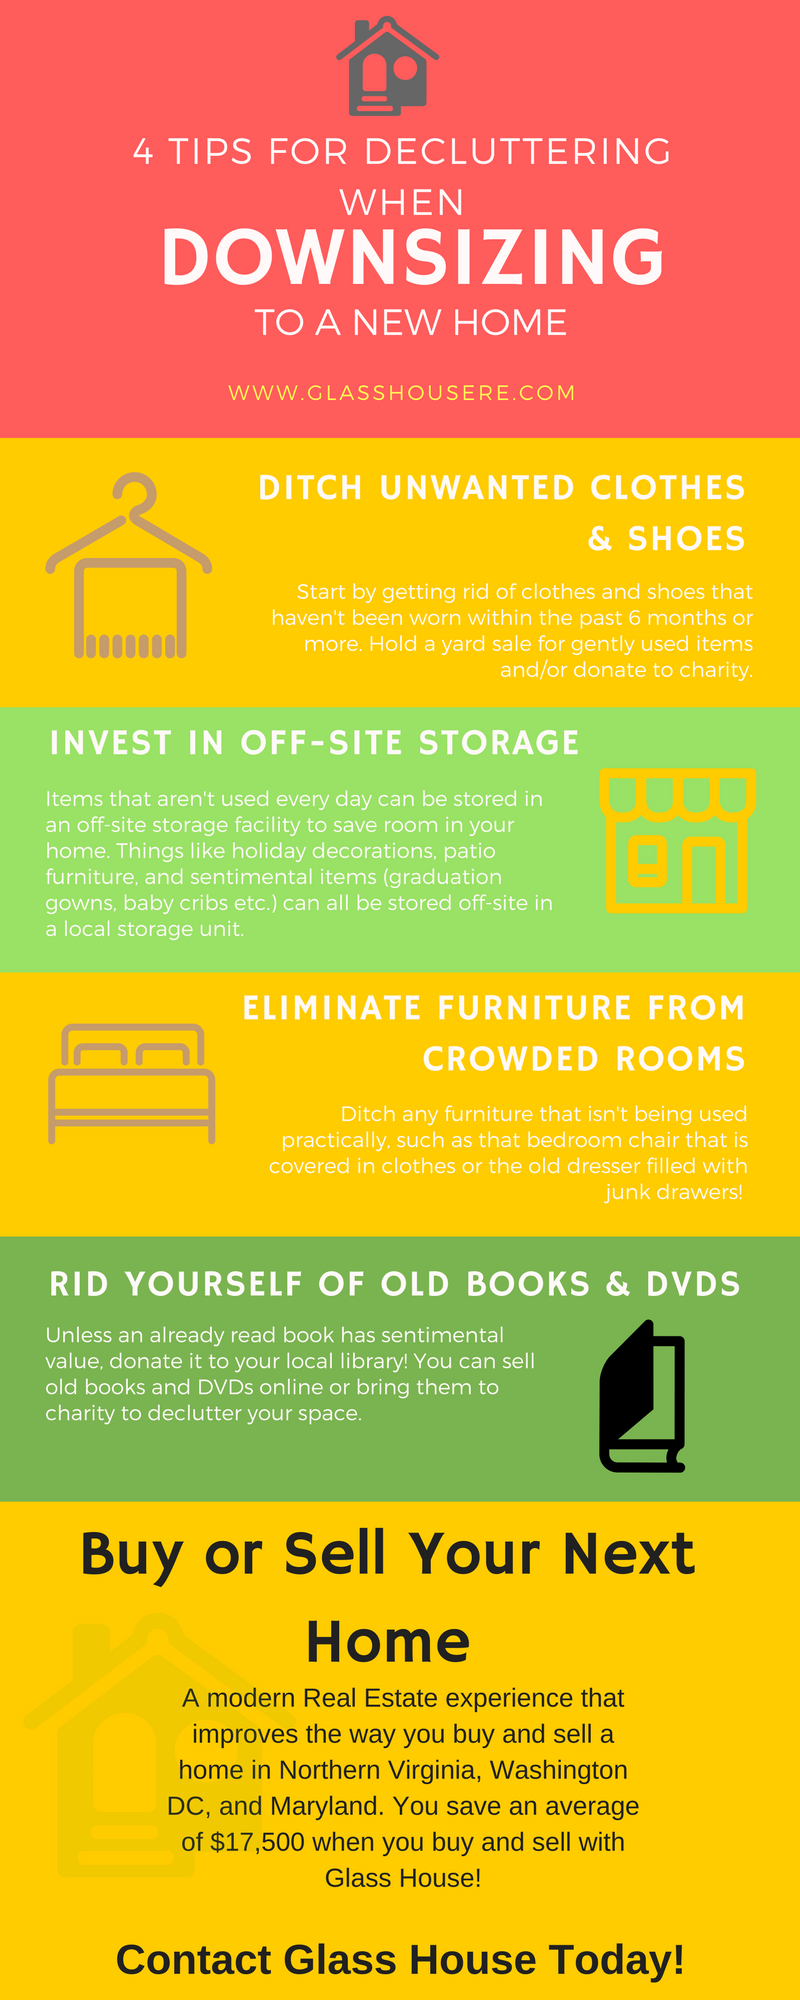 4 Tips For Decluttering When Downsizing To a New Home [INFOGRAPHIC]